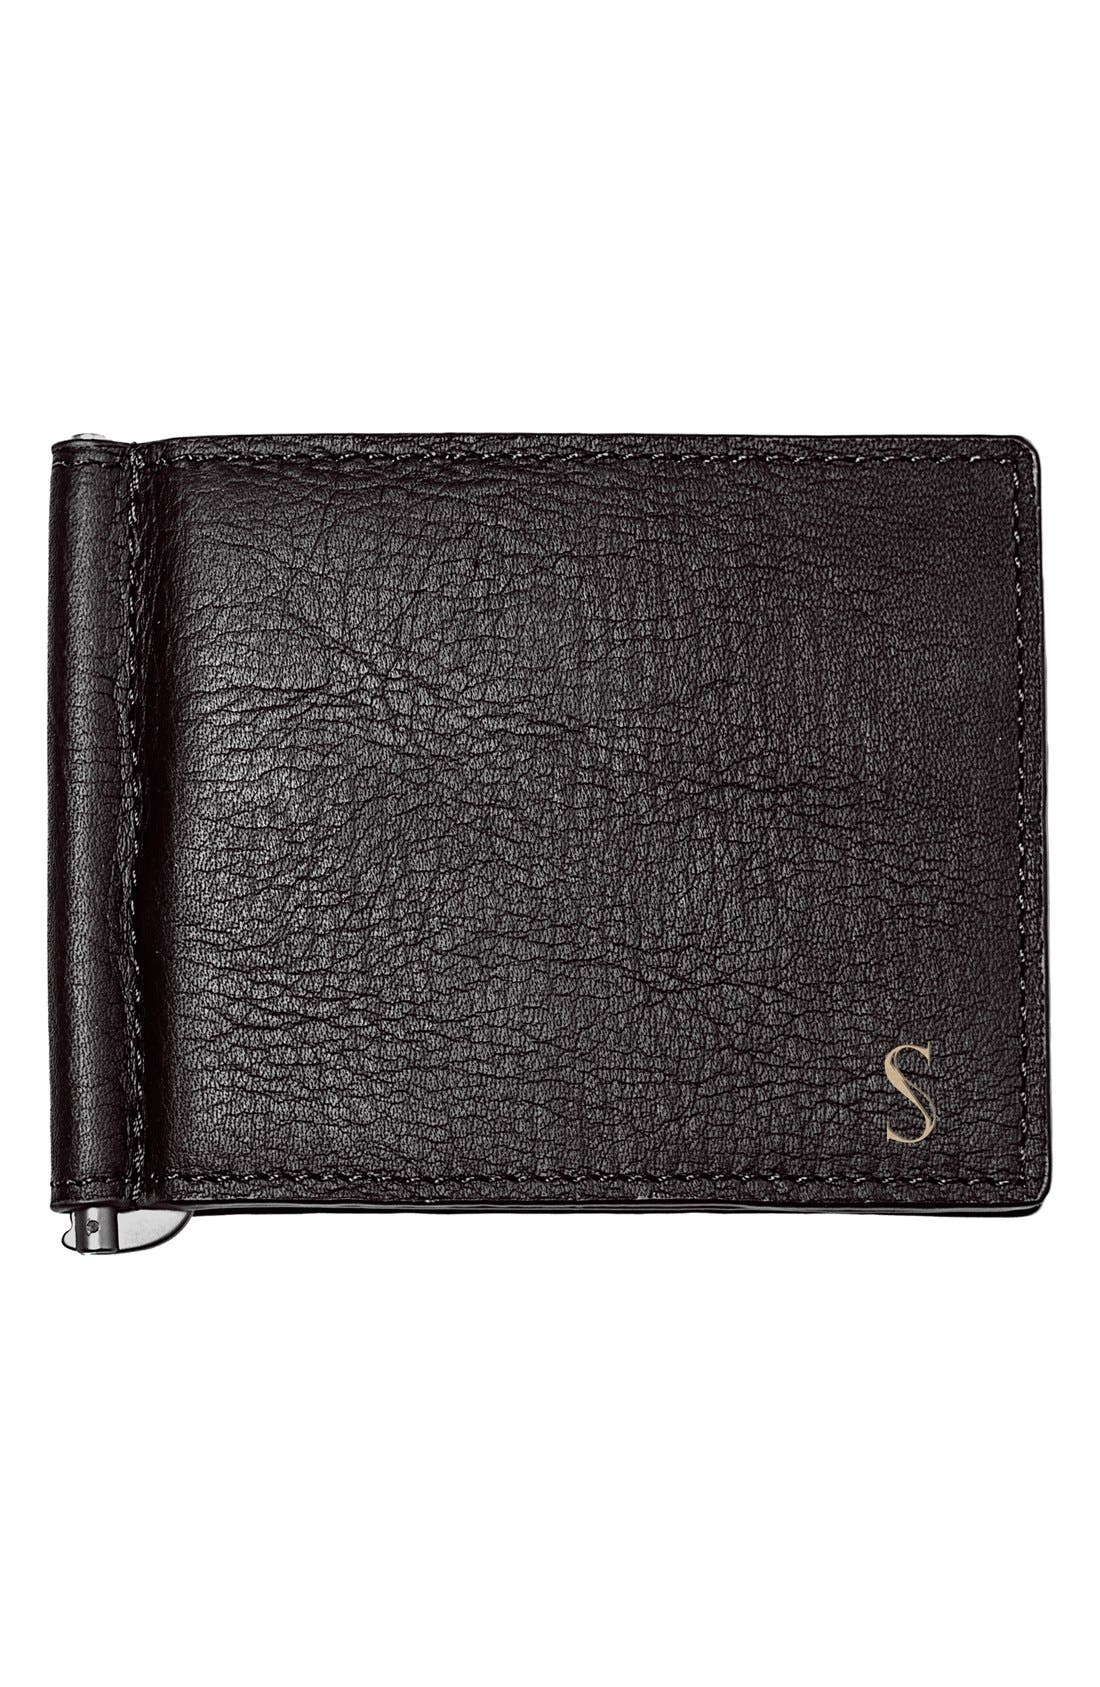 Cathy's Concepts Monogram Leather Wallet & Money Clip